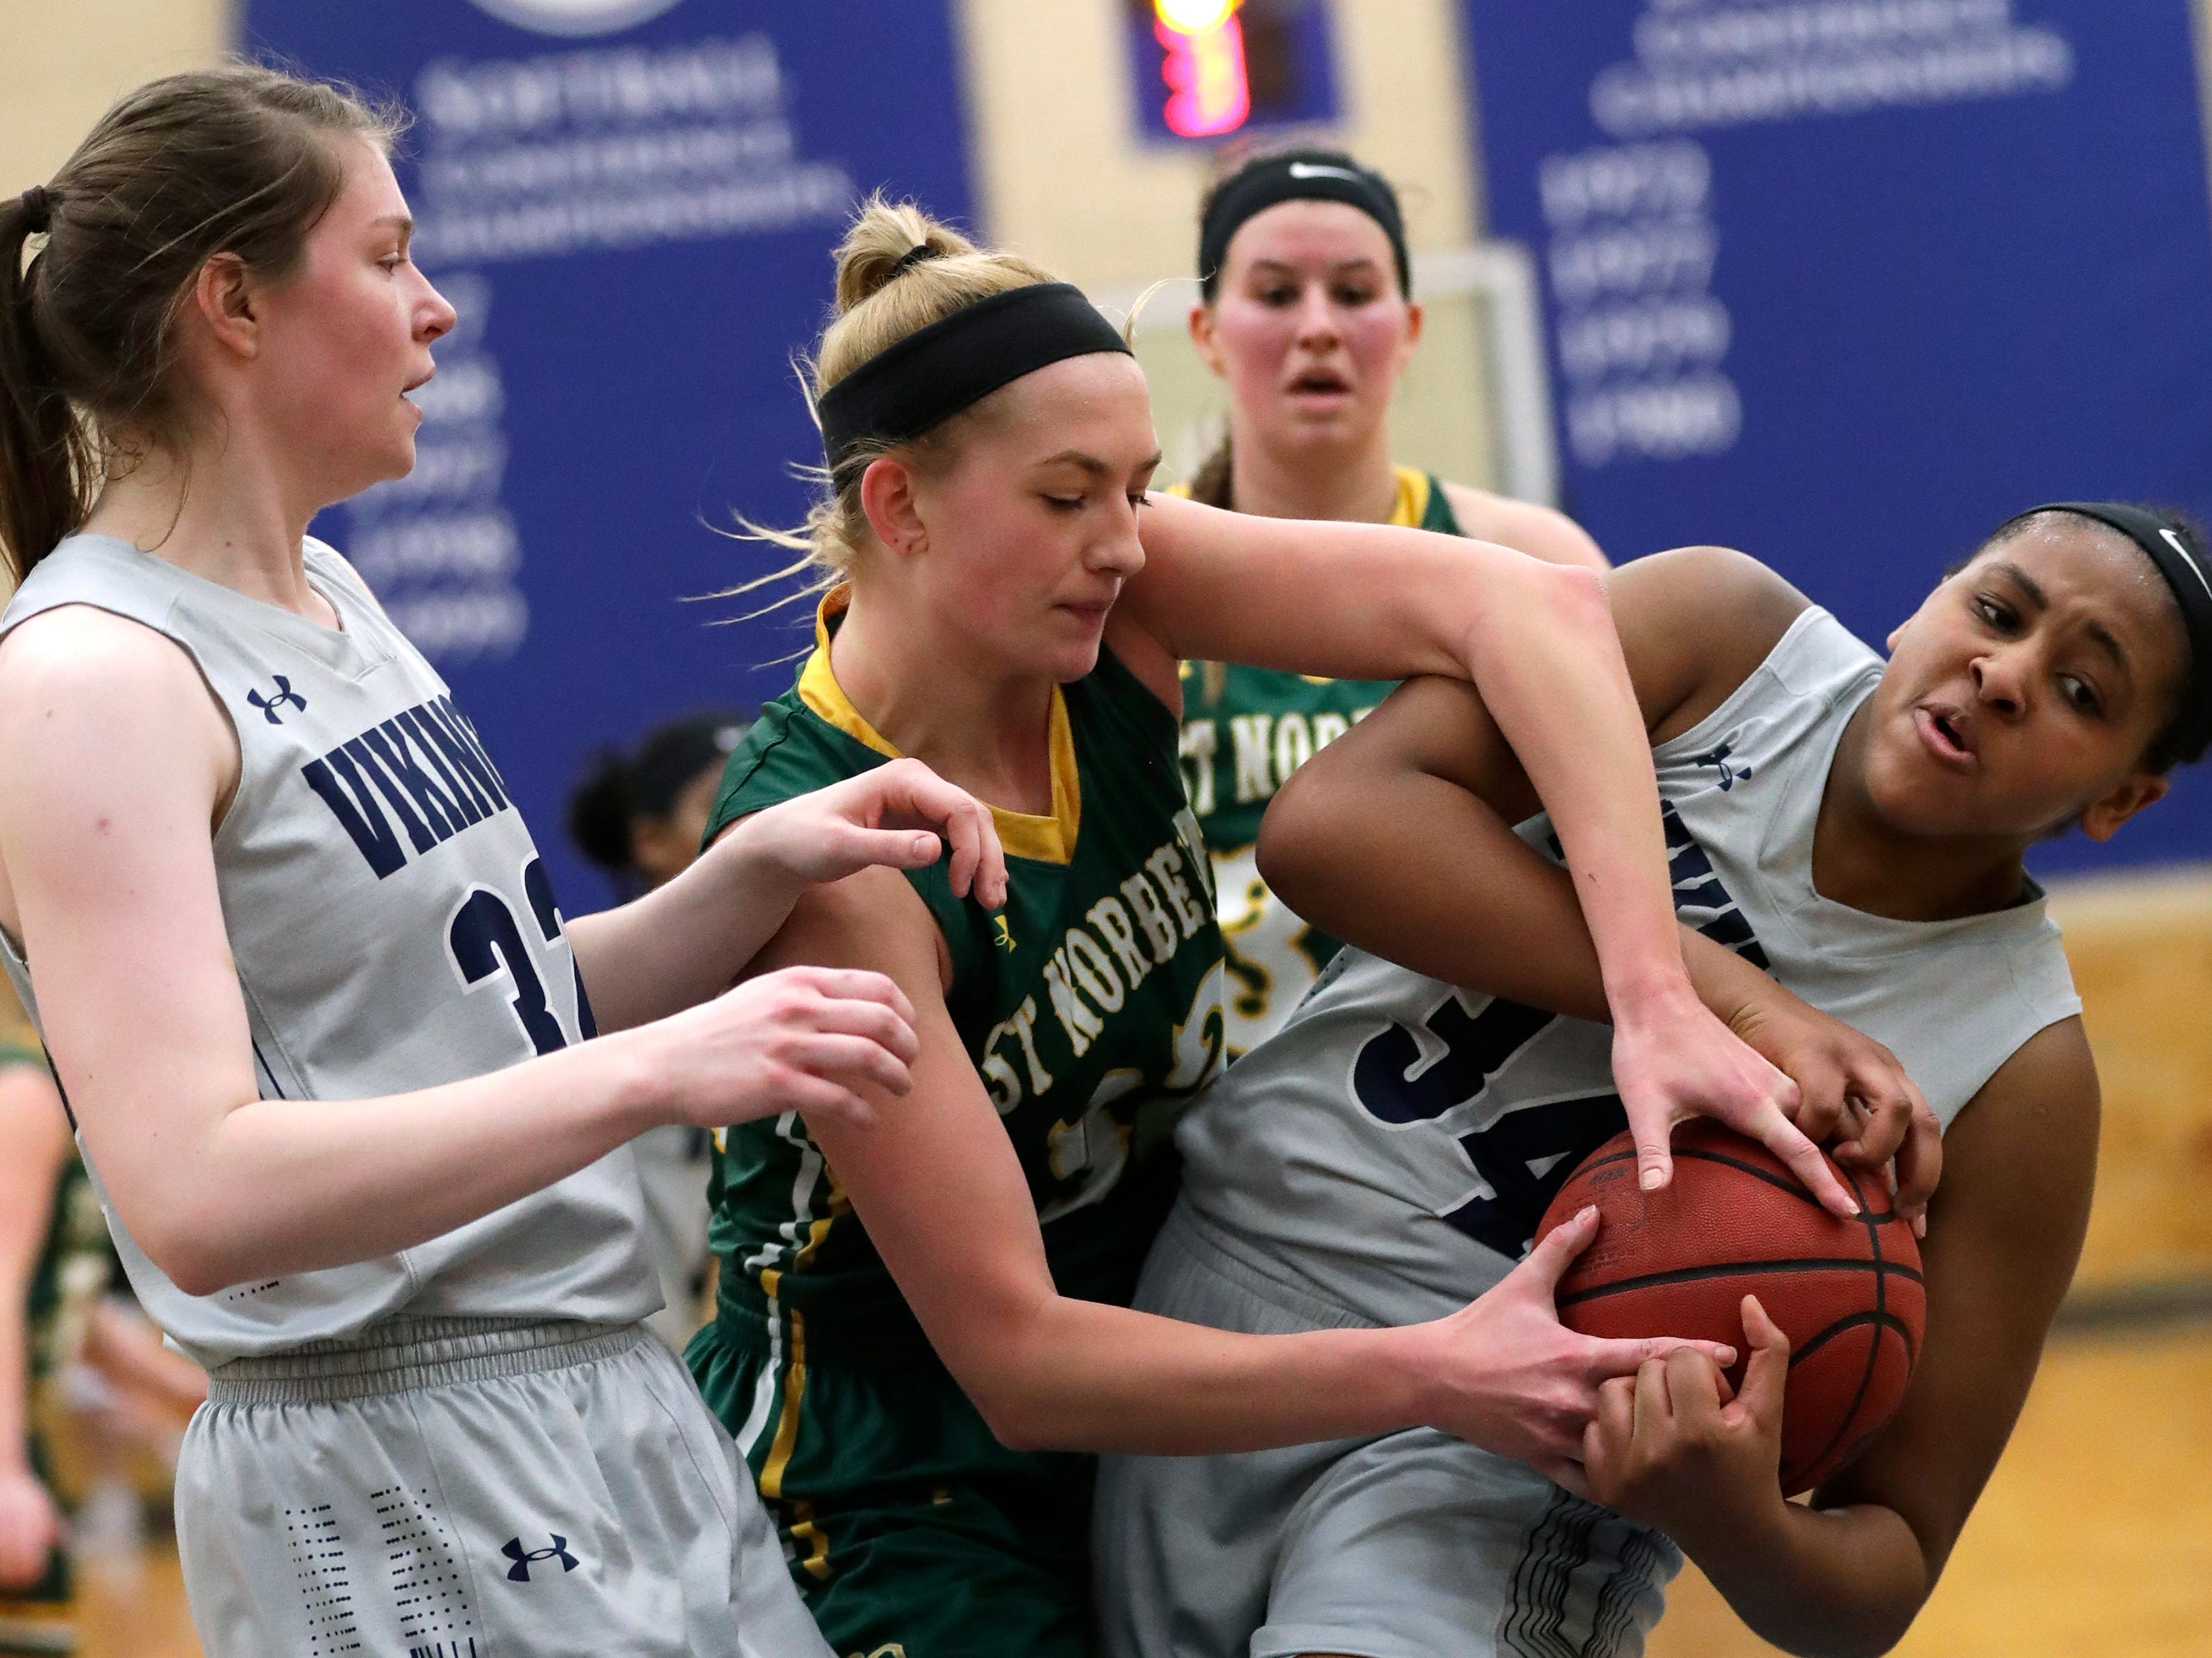 Lawrence University's Kenjya Earl (34) pulls down a rebound against St. Norbert College's Jessica Boerner (32) as Leah Reeves (32) looks to help on the play during their women's basketball game Thursday, January 31, 2019, at Alexander Gymnasium in Appleton, Wis. 